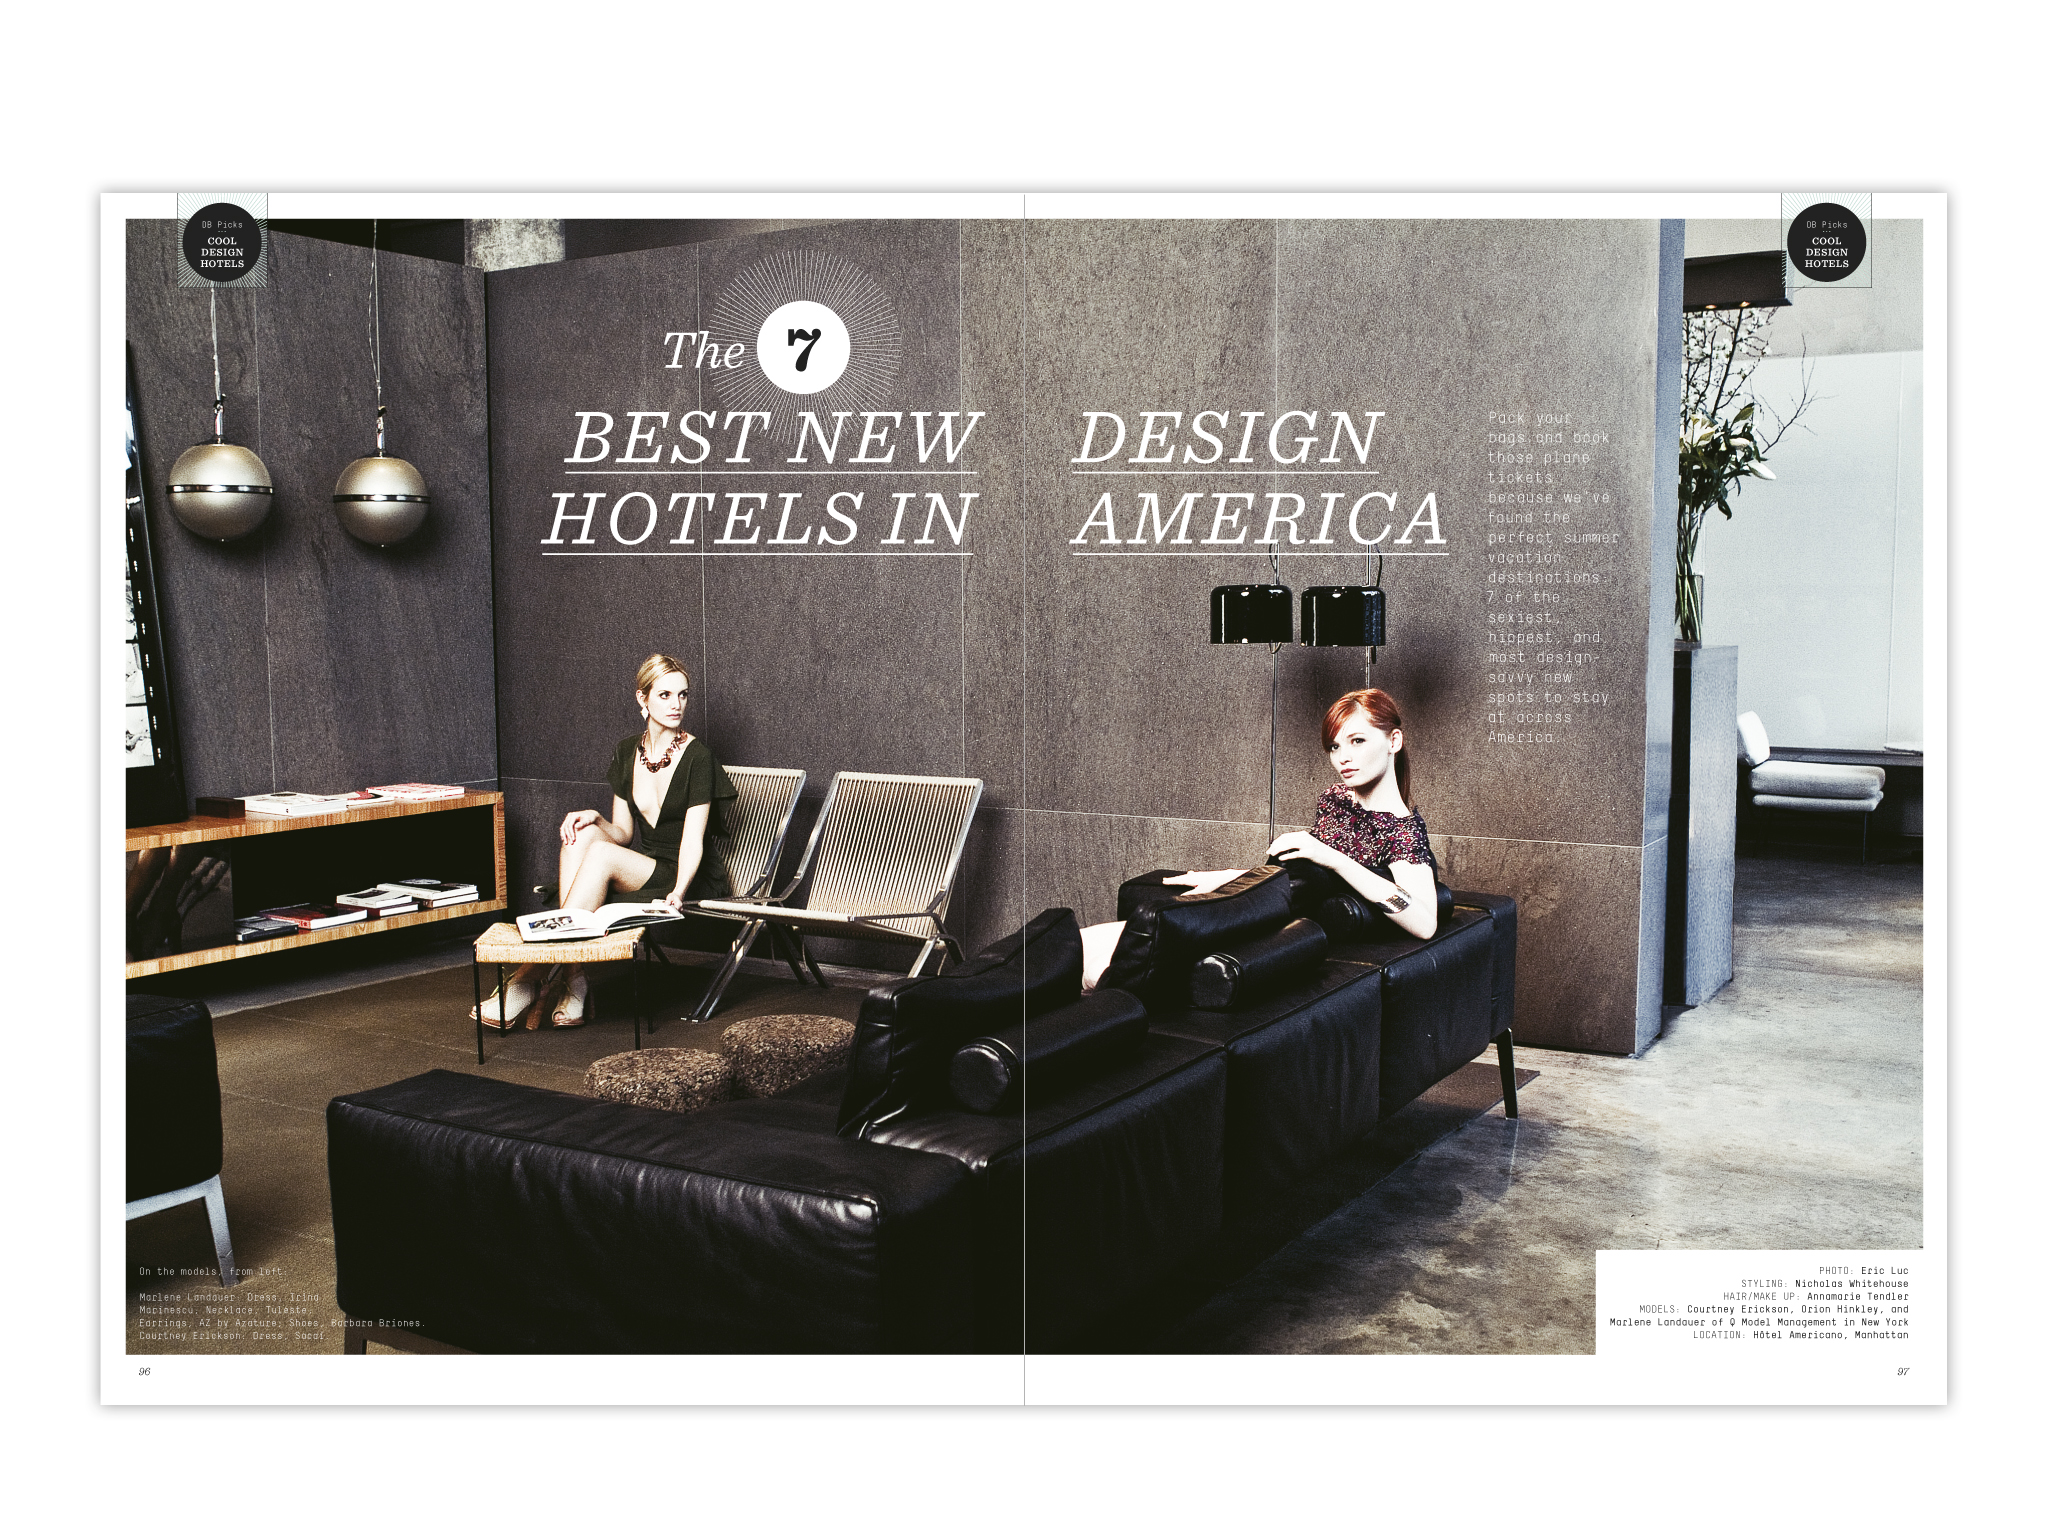 spread_hotel1 copy.jpg